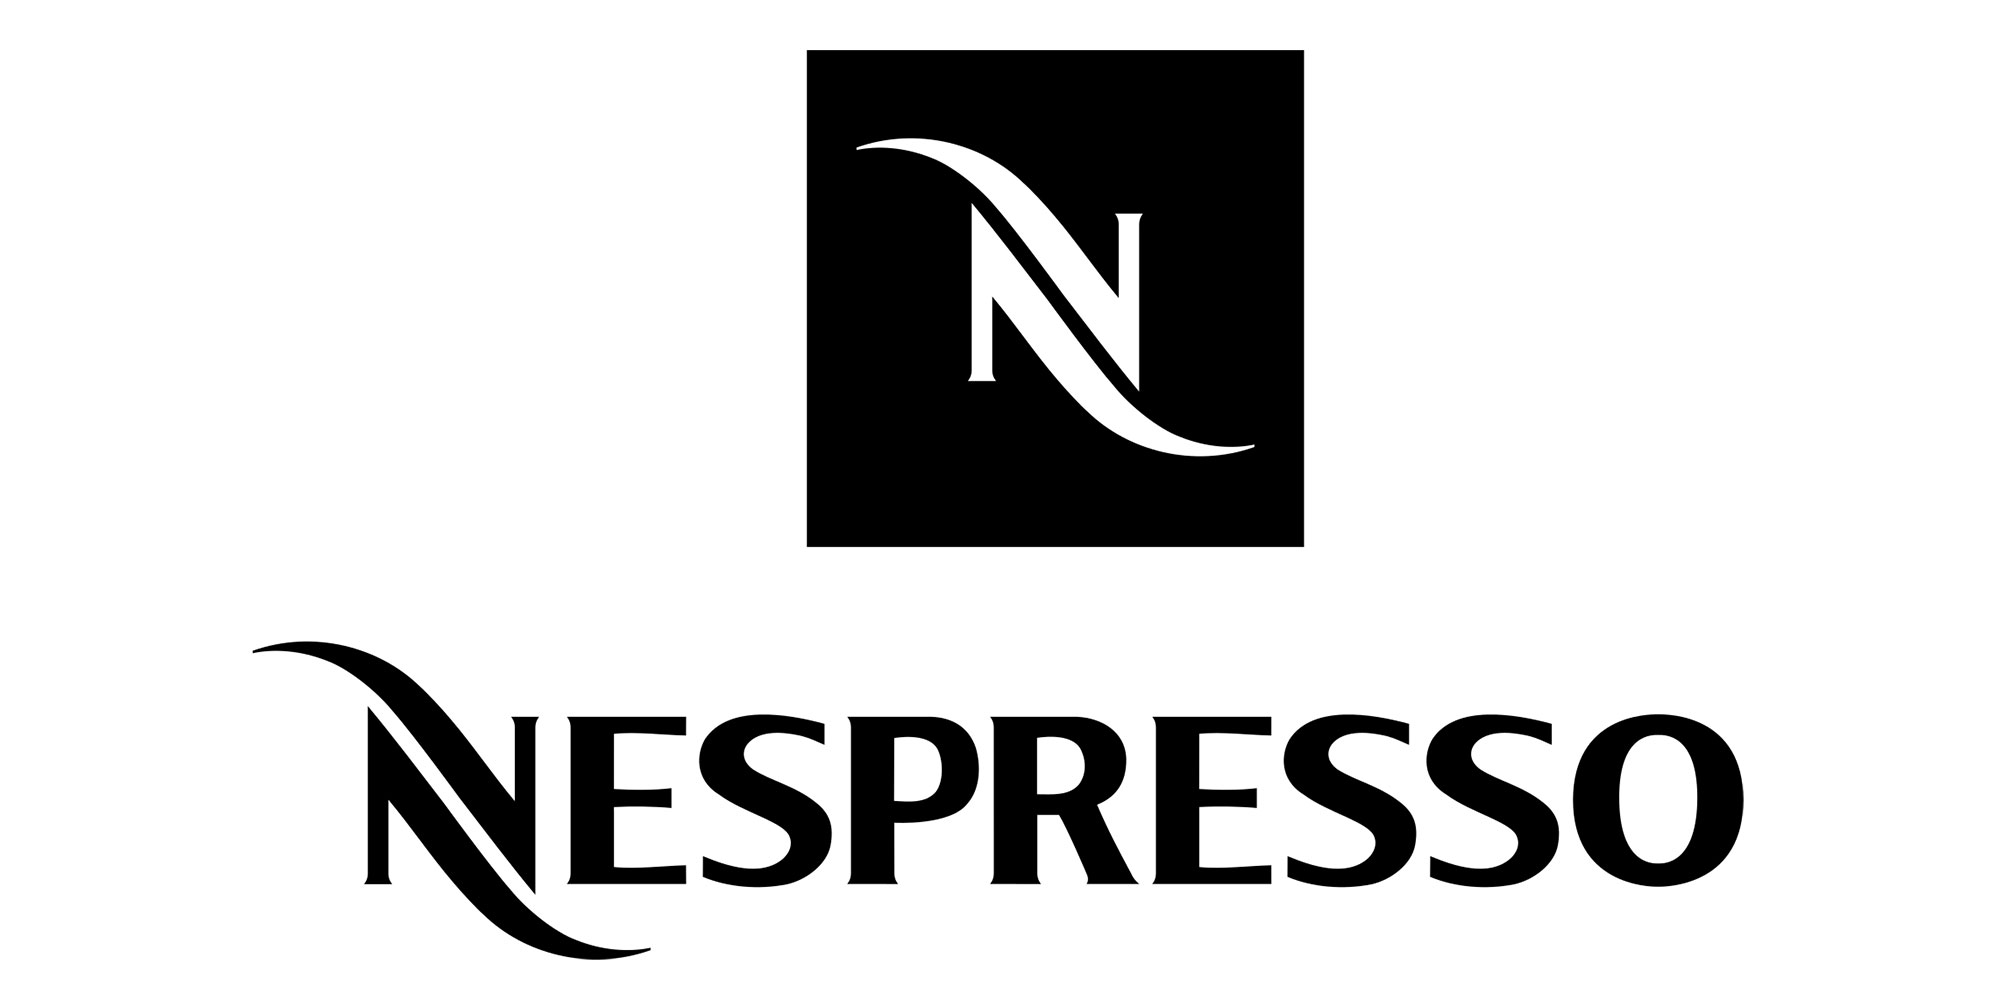 Magasin Nespresso Toulon - Alimentation à Toulon